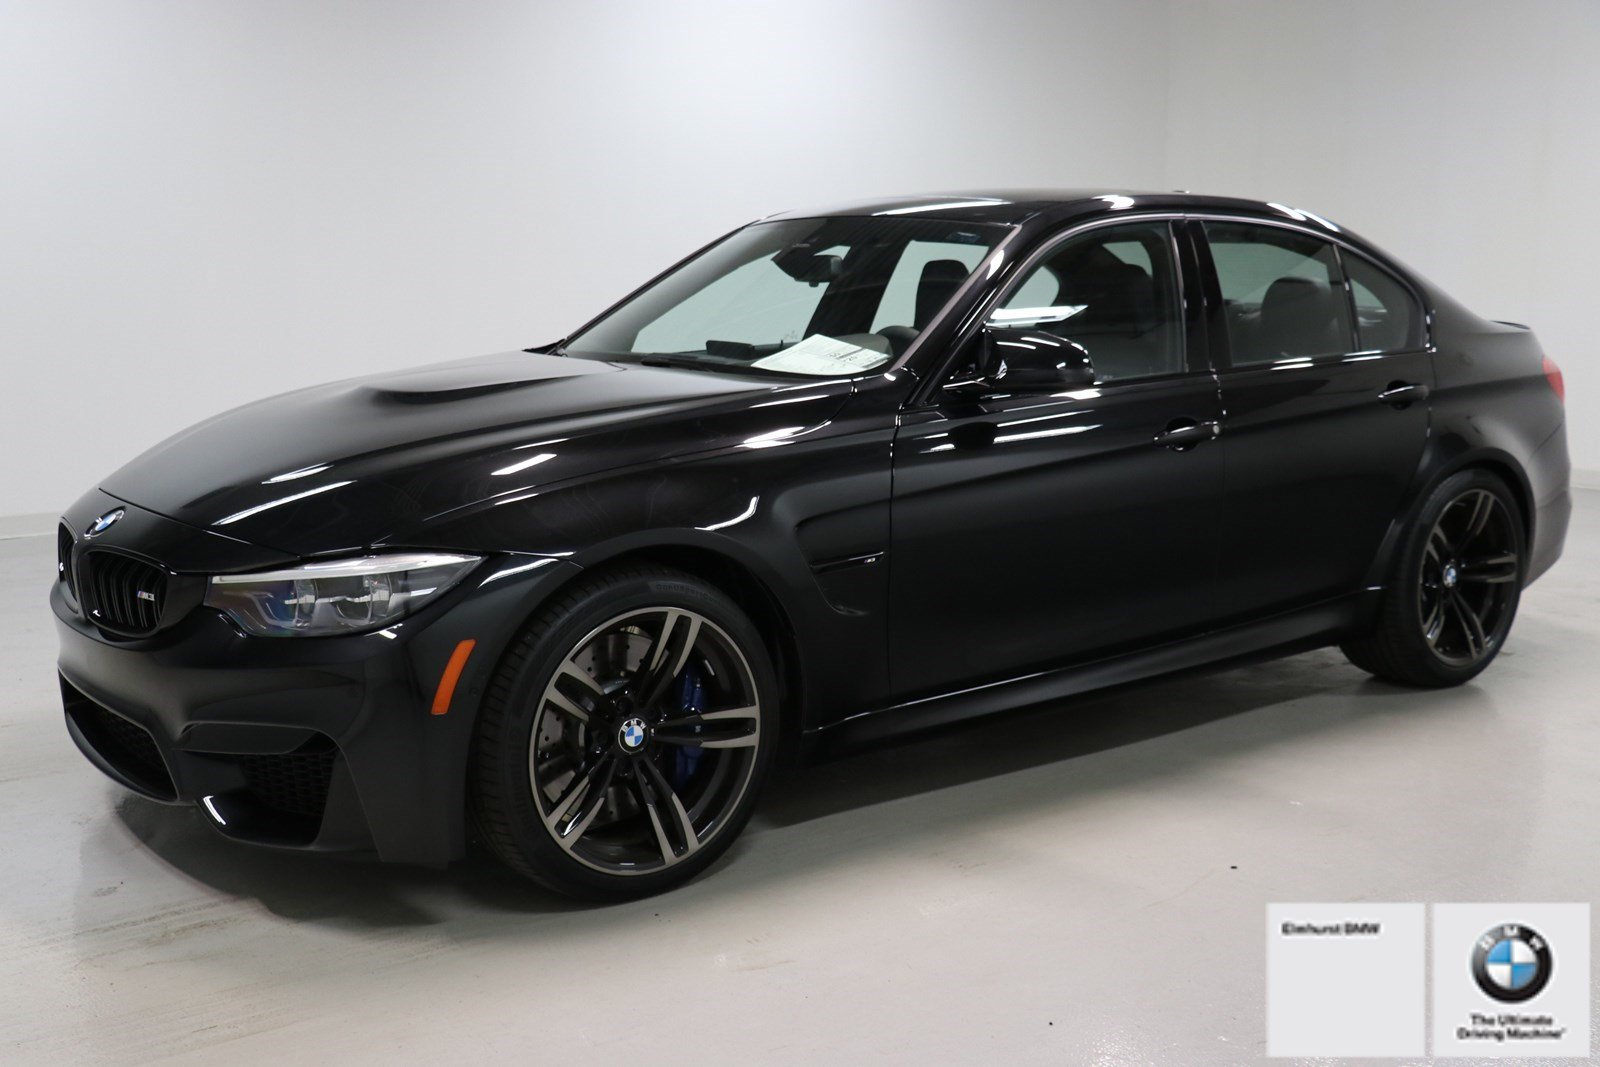 new 2018 bmw m3 4dr car in elmhurst b8211 elmhurst bmw. Black Bedroom Furniture Sets. Home Design Ideas